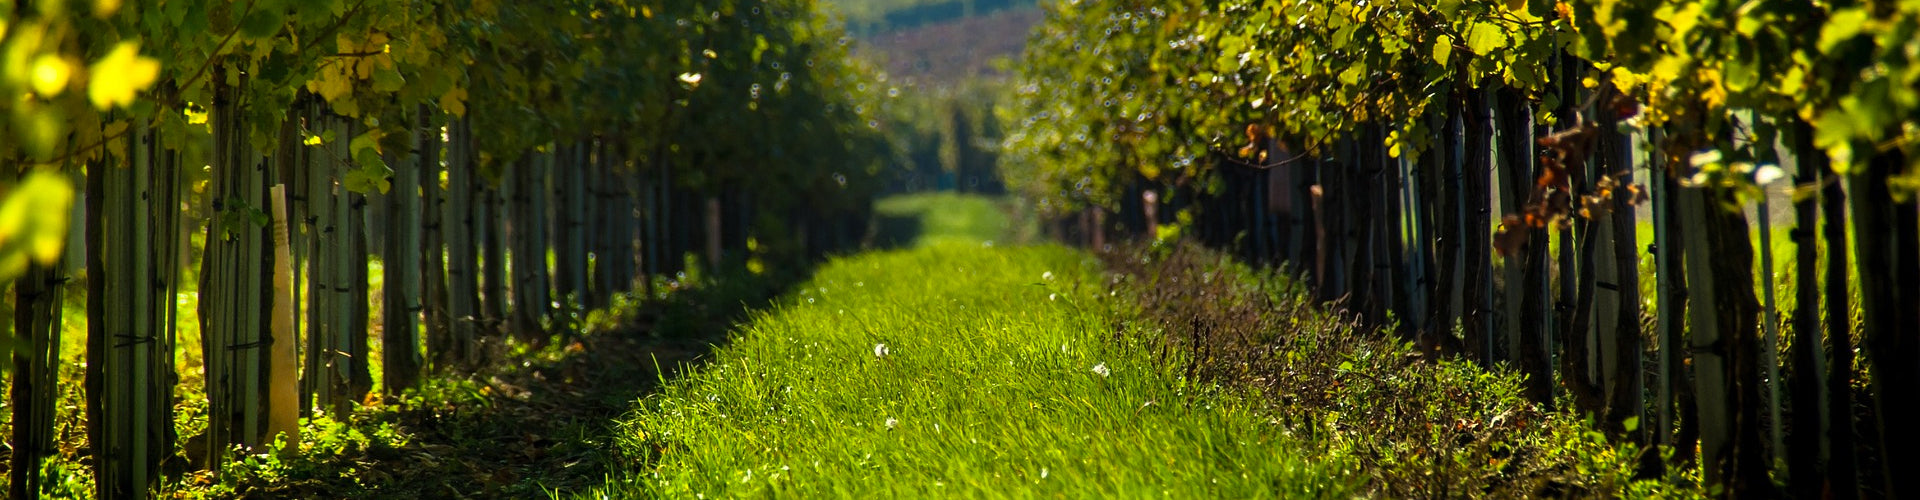 Organic Vines in Vineyards with Crop Cover